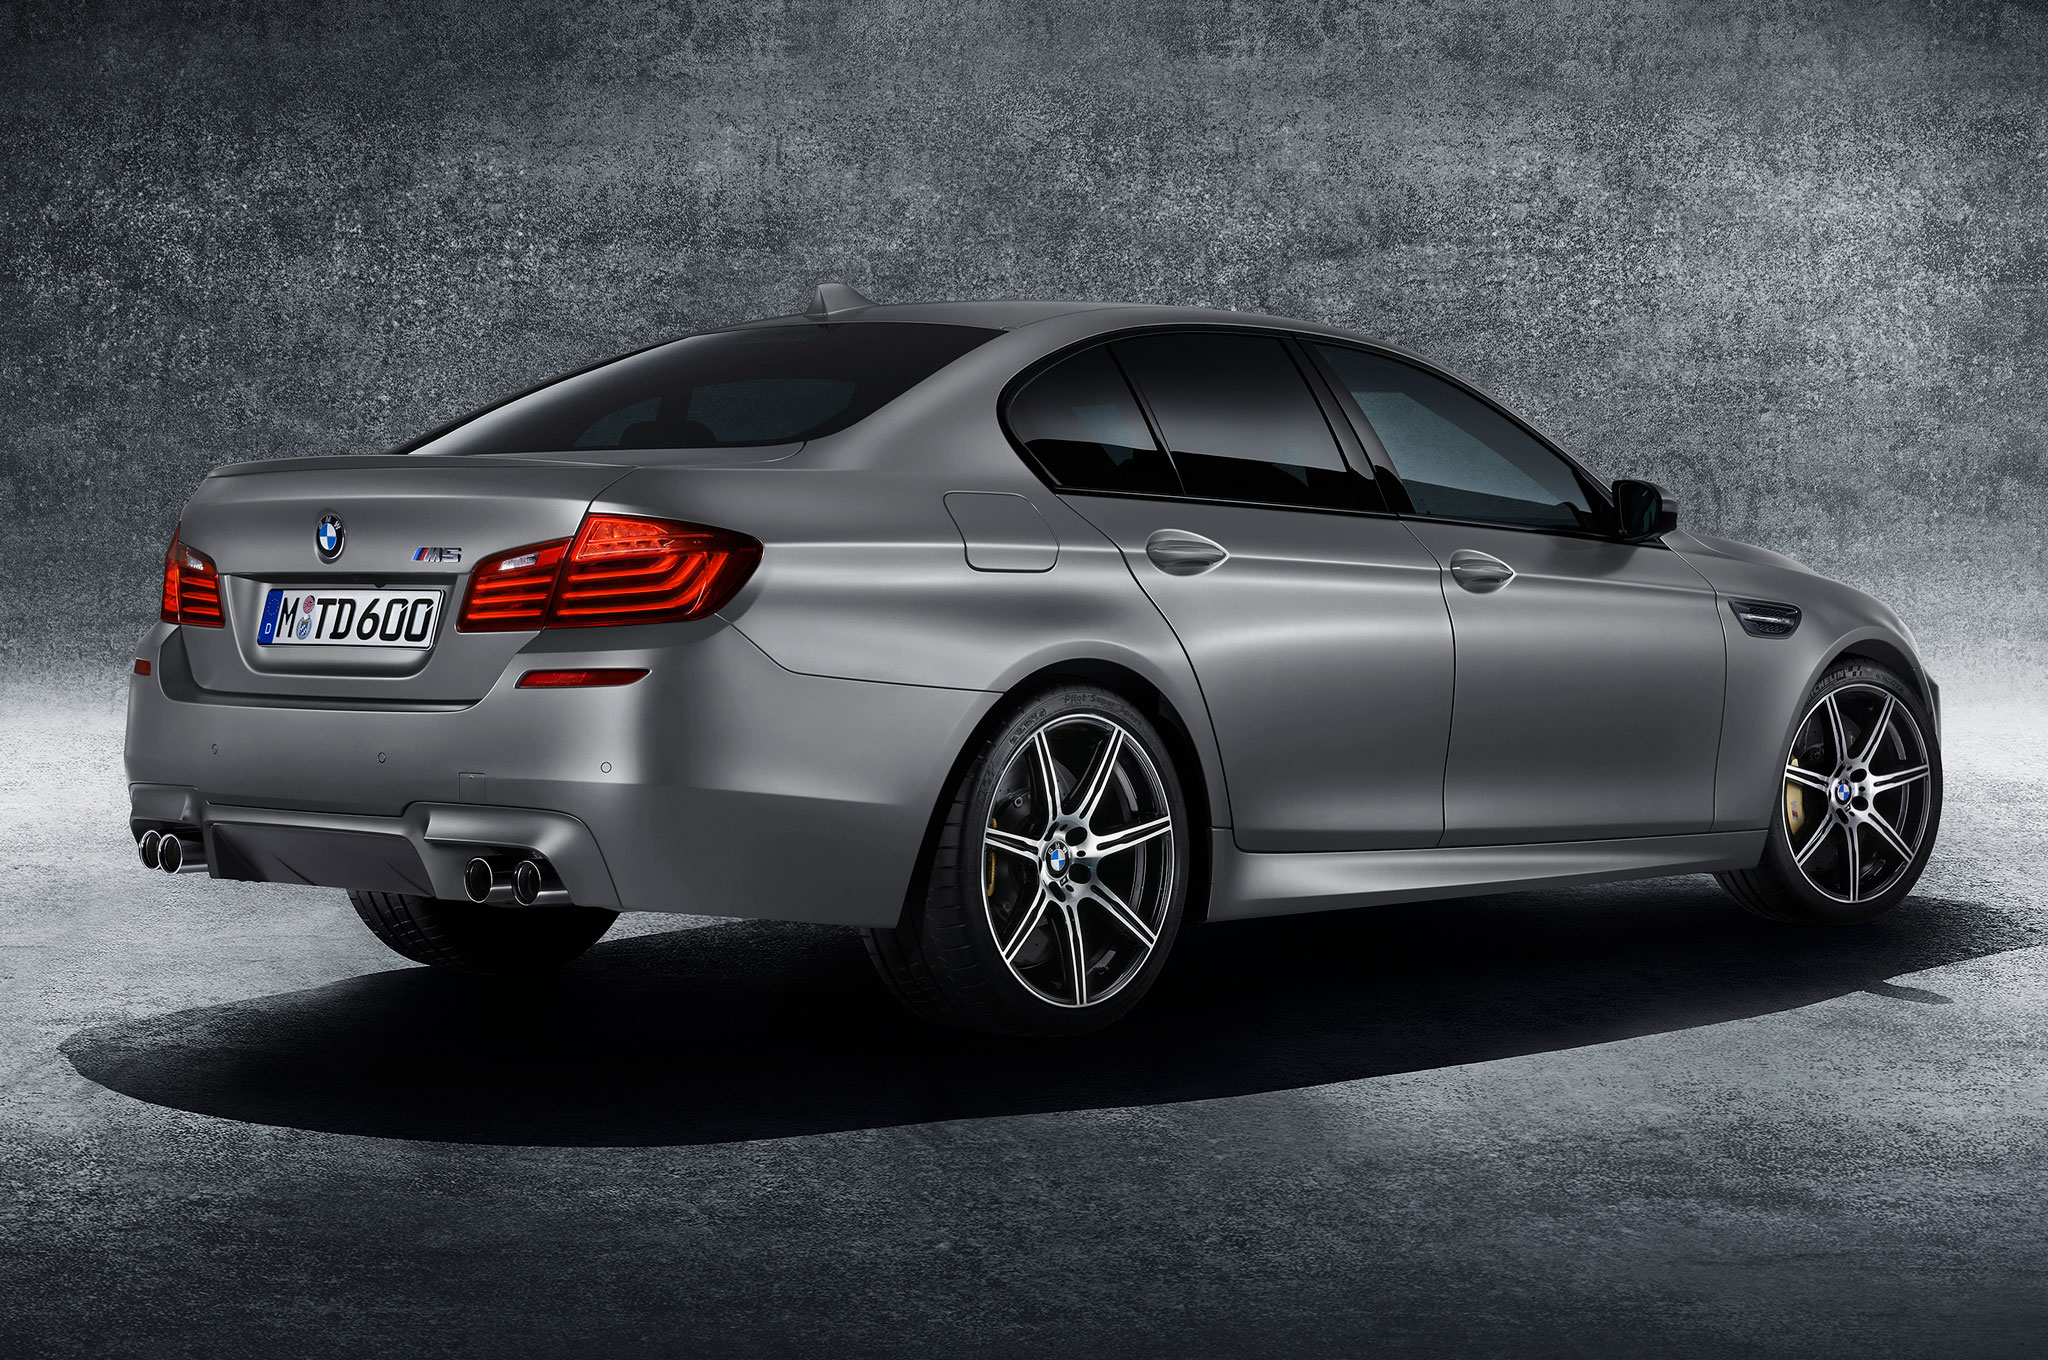 2015 BMW M5 30th Anniversary Edition Packs 600 HP - Automobile